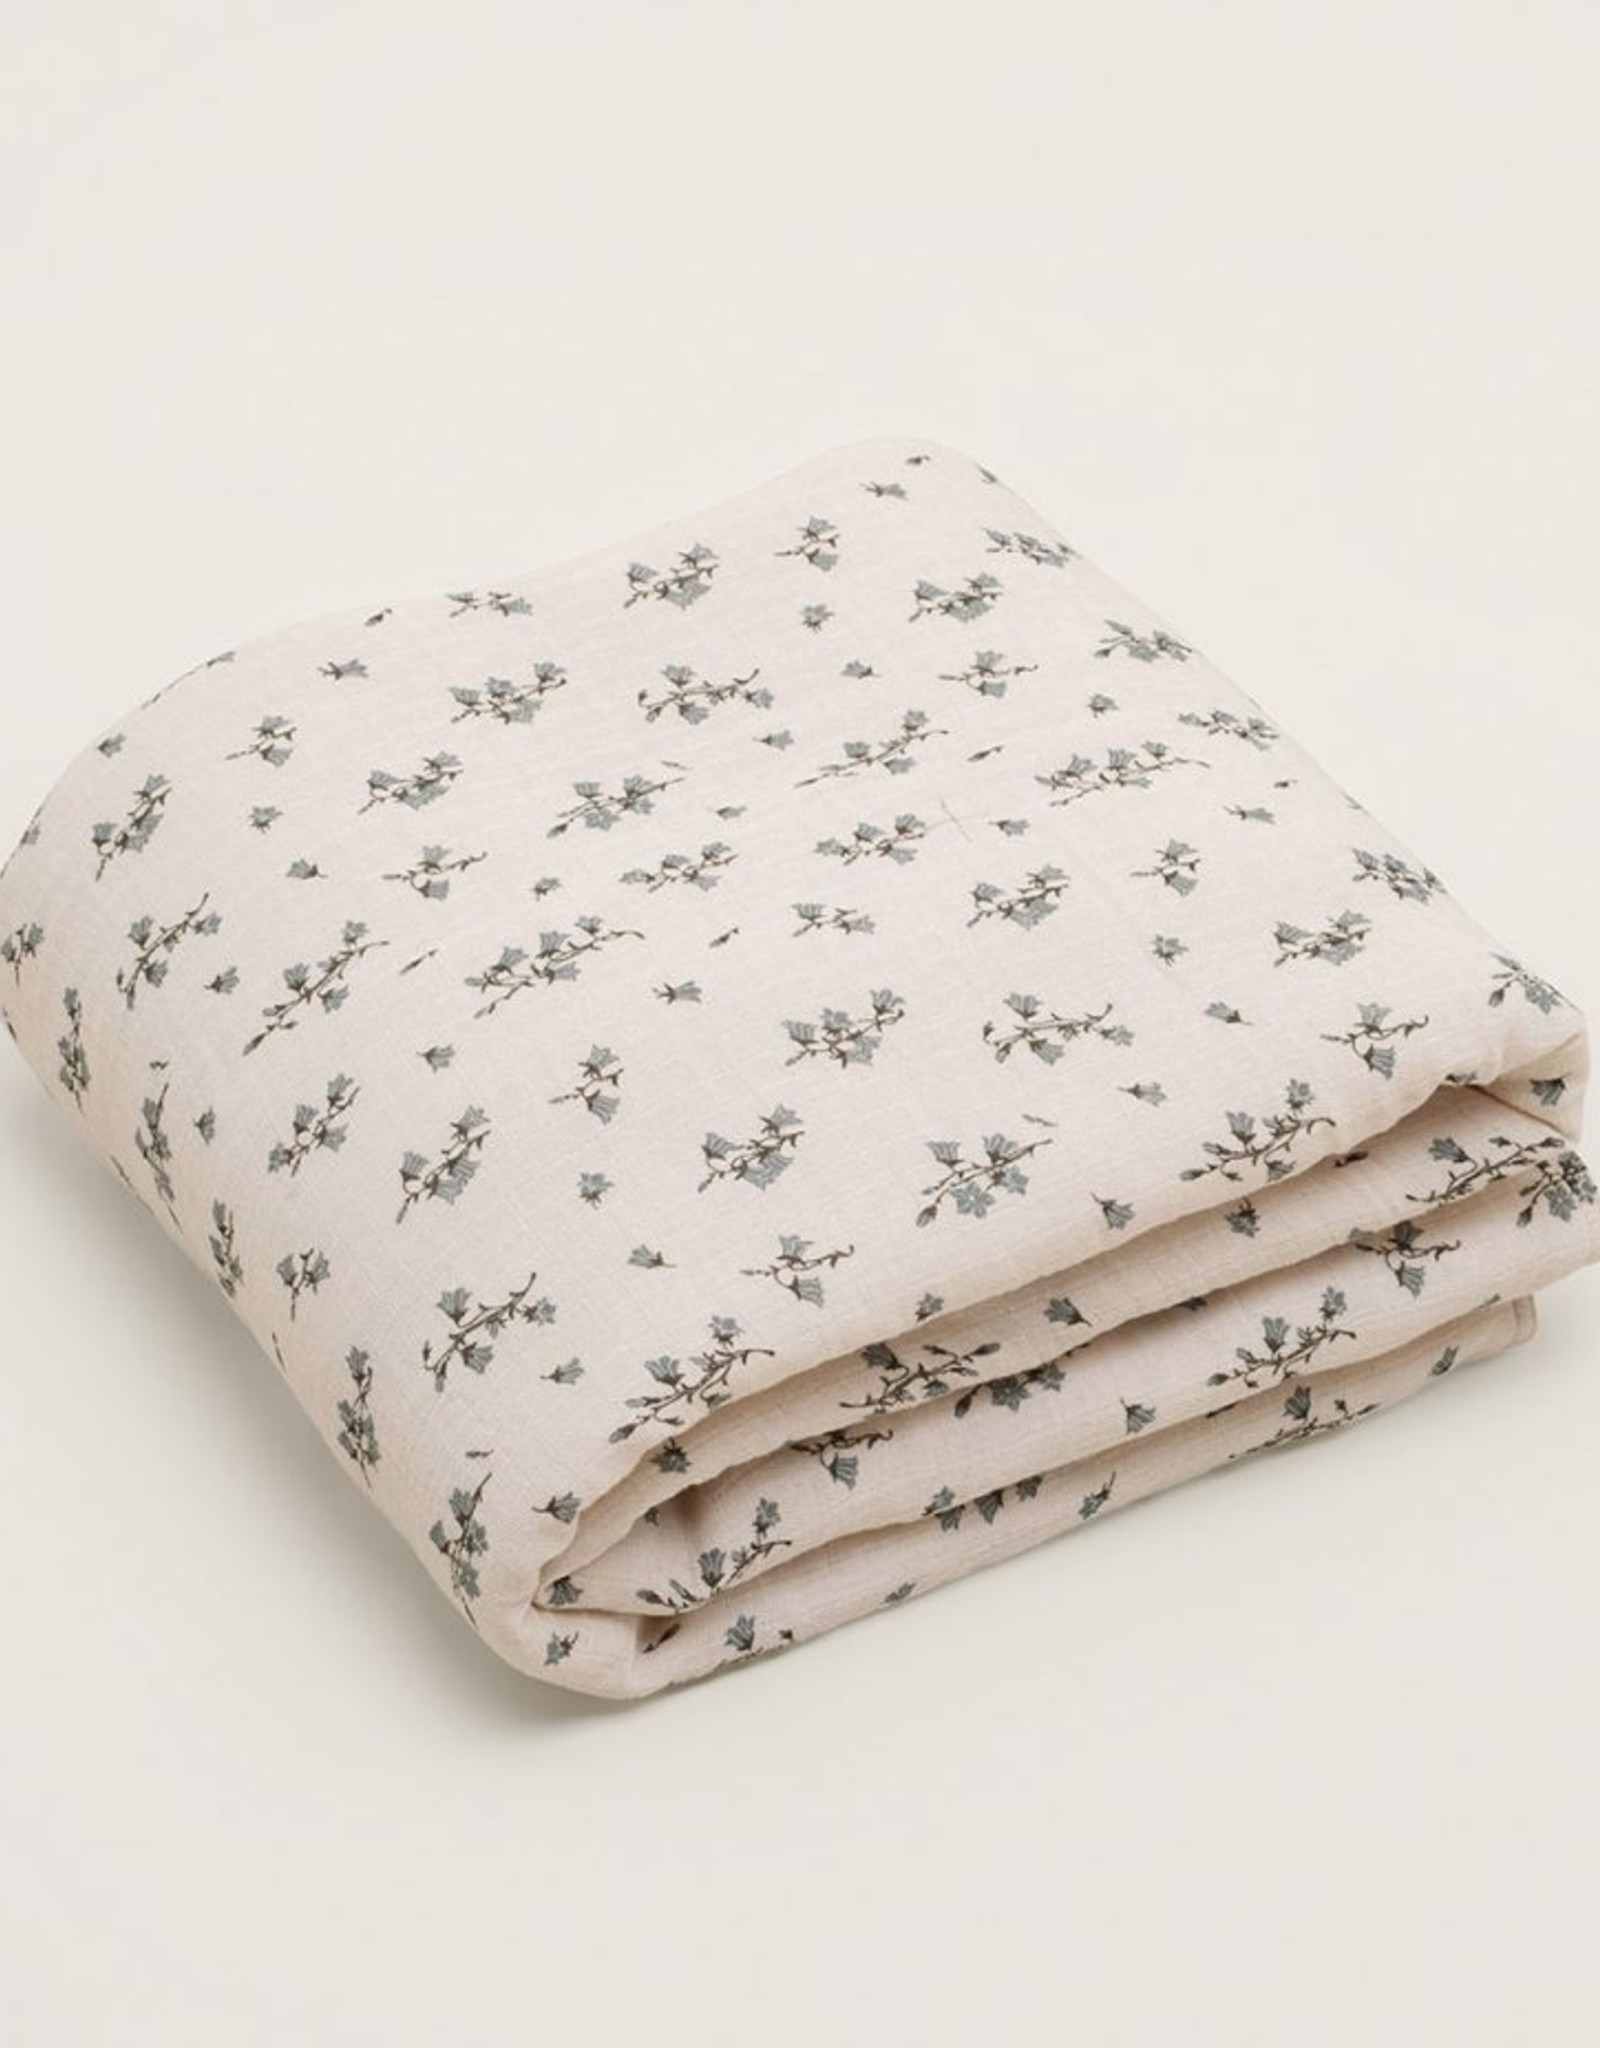 Garbo and friends Bluebell Muslin Quilt